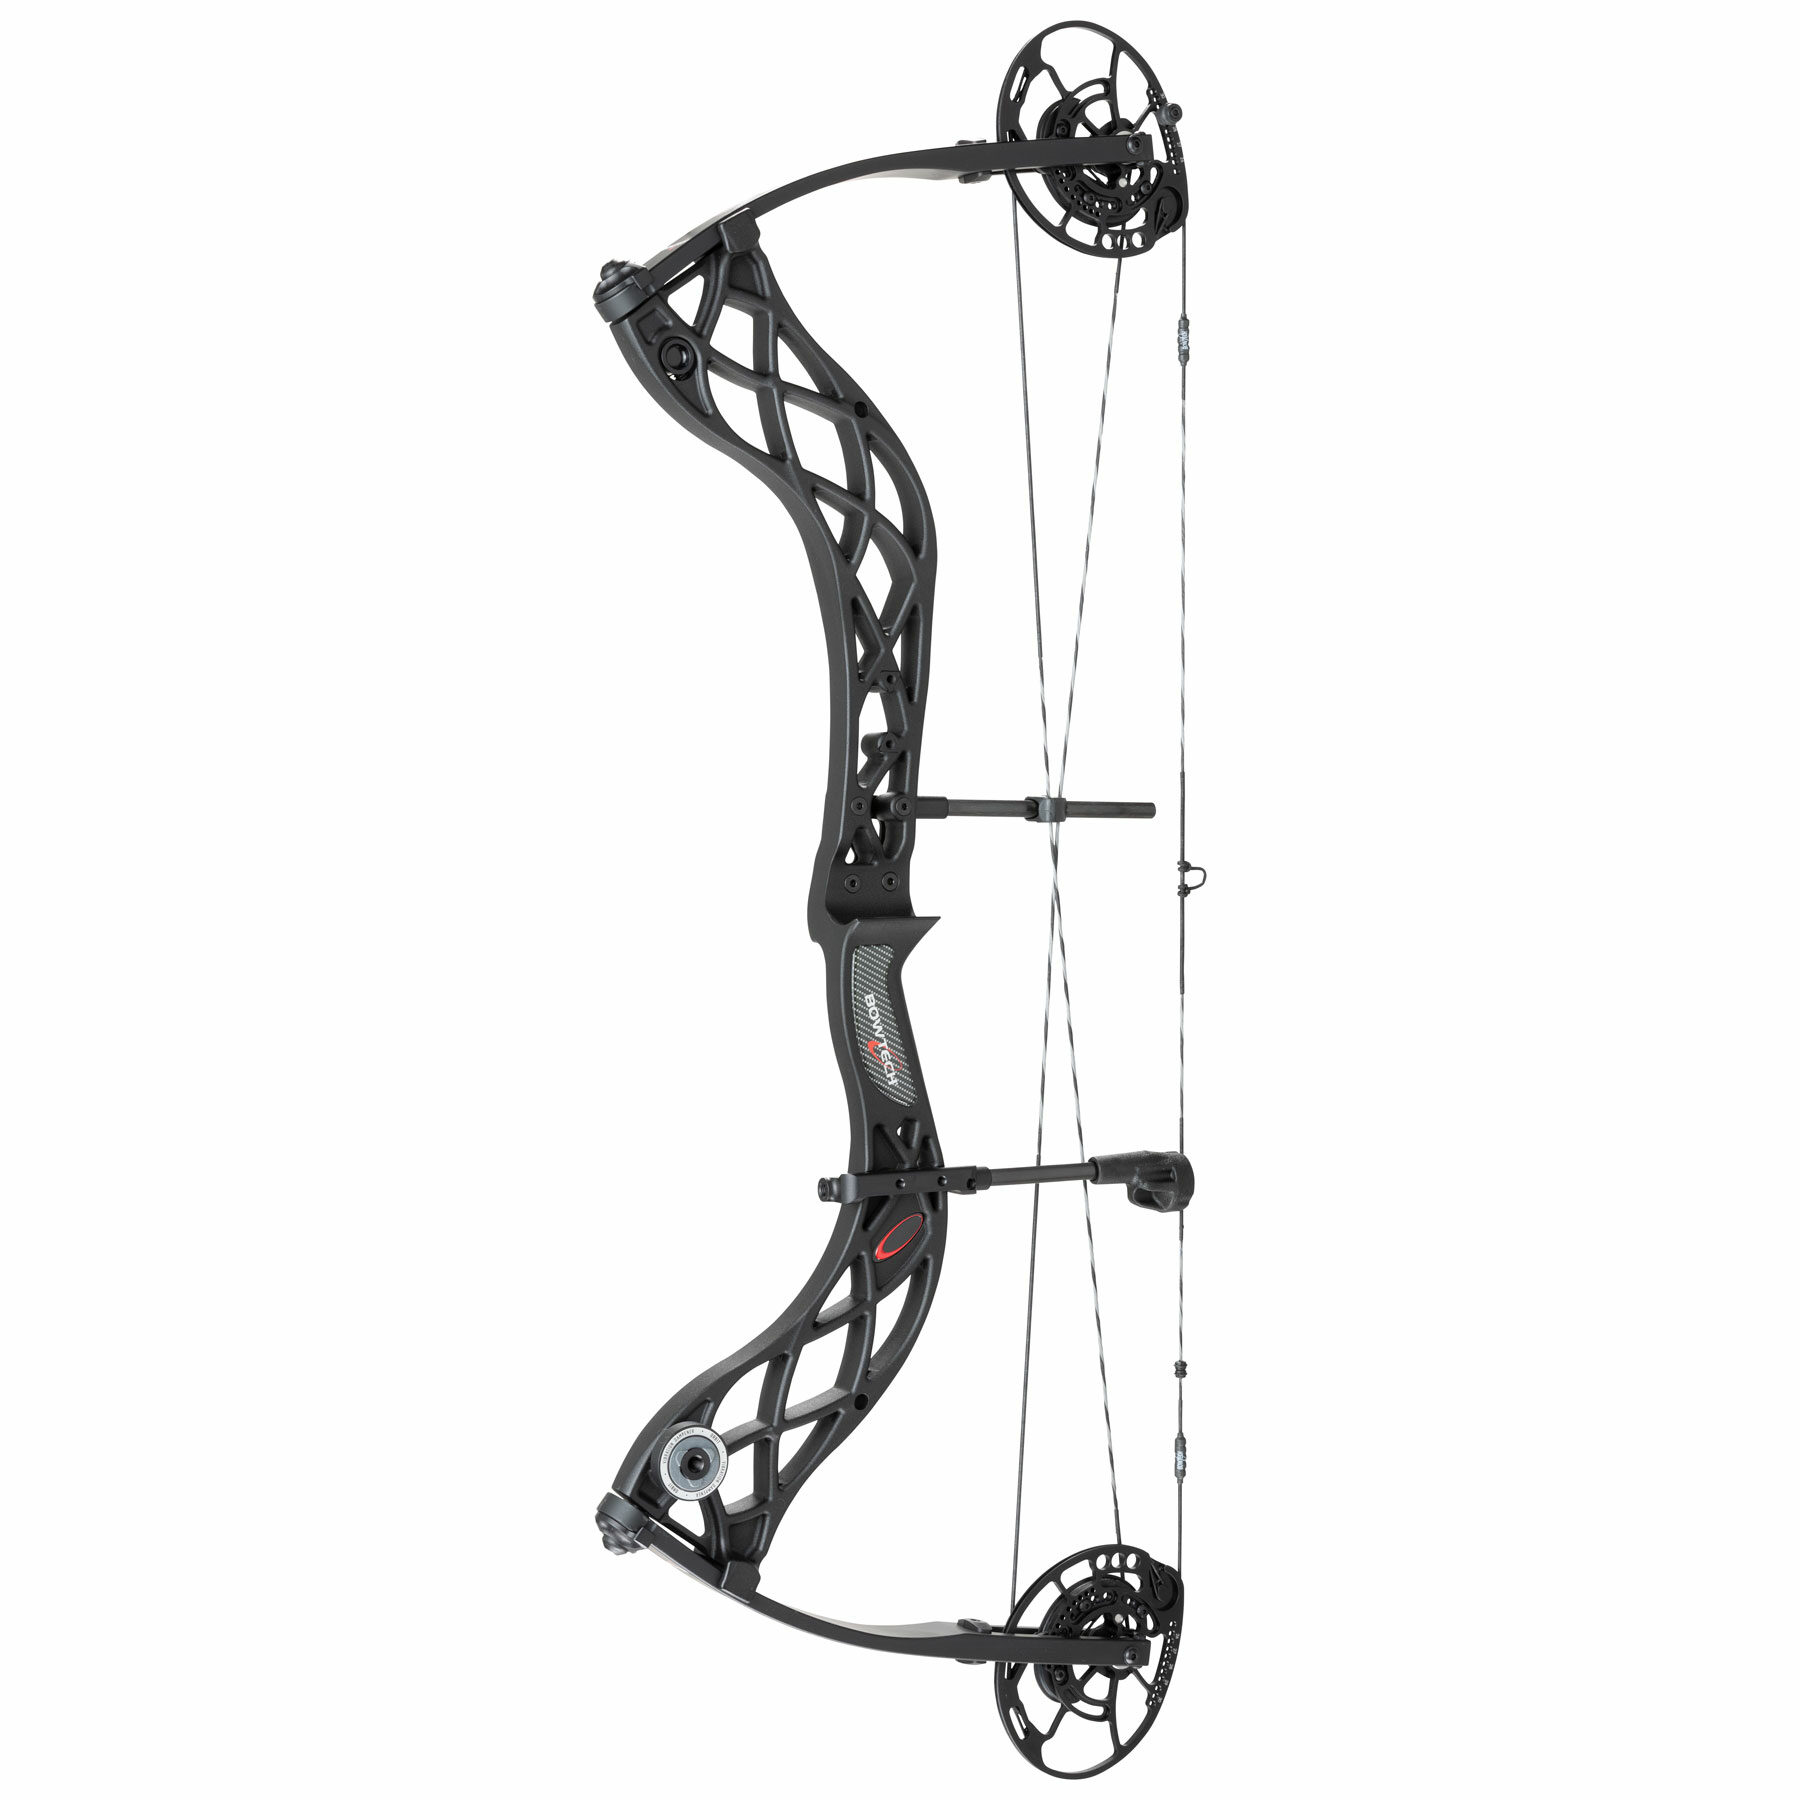 Carbon Zion black archery compound bow